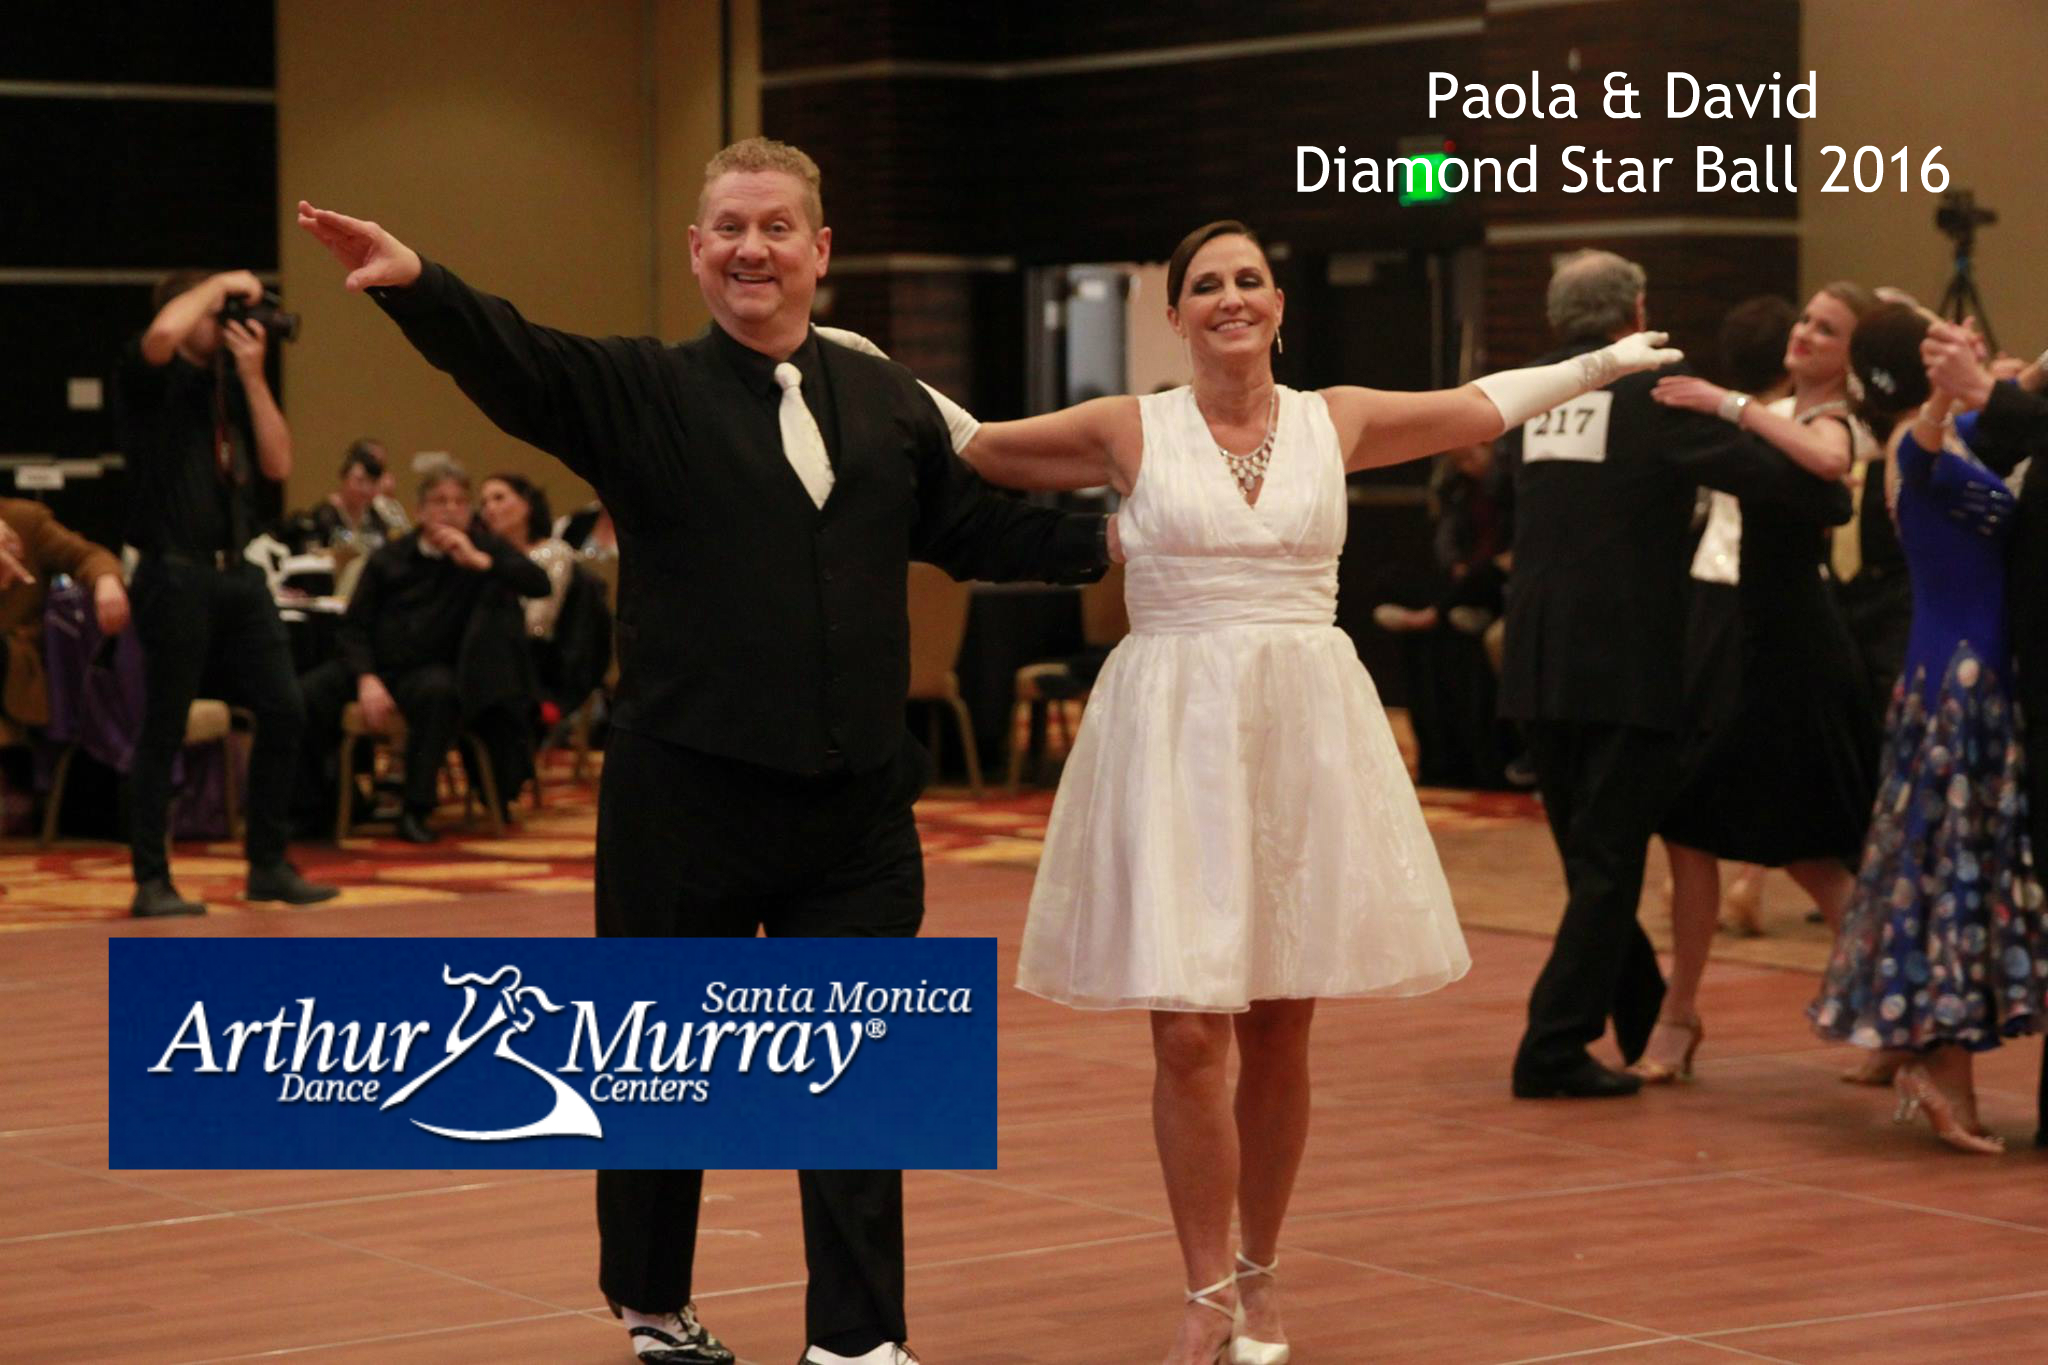 David and Paola DSB 3-6-16 with Logo and Text